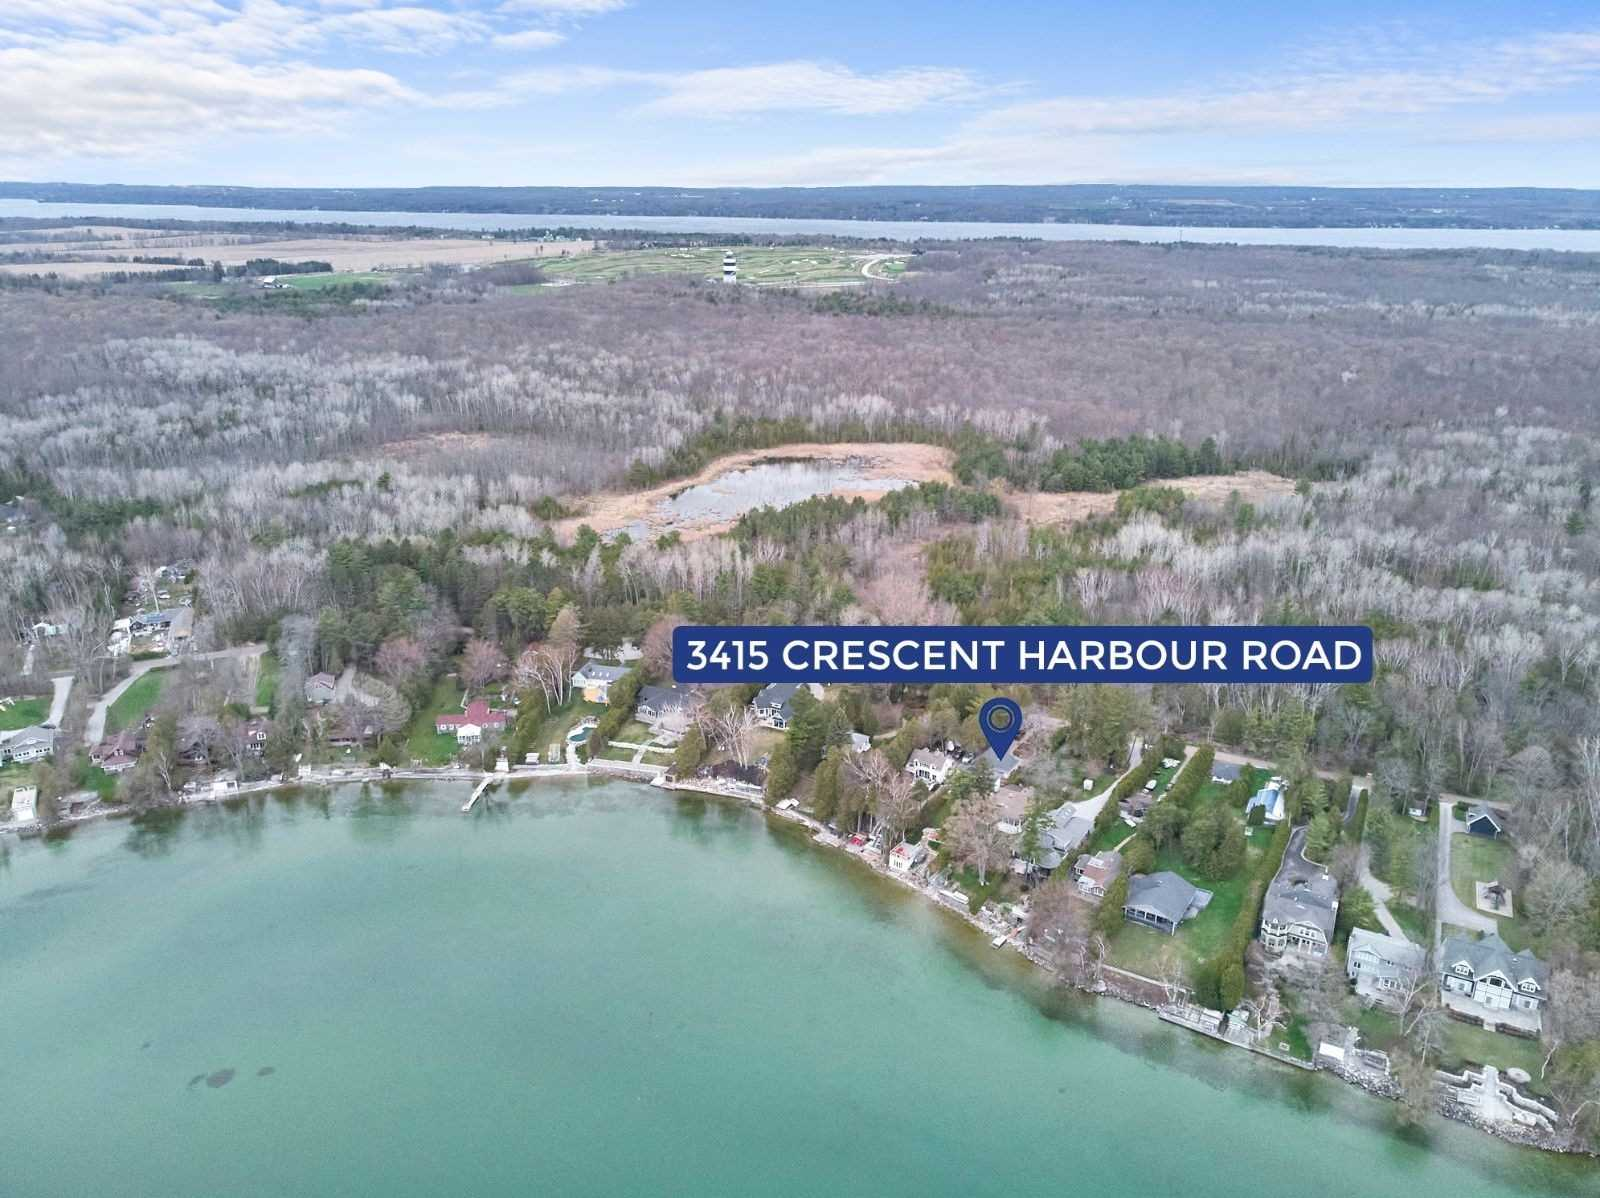 3415 Crescent Harbour Rd, Innisfil, Ontario L9S 2Y7, 3 Bedrooms Bedrooms, 5 Rooms Rooms,3 BathroomsBathrooms,Detached,For Sale,Crescent Harbour,N5149544